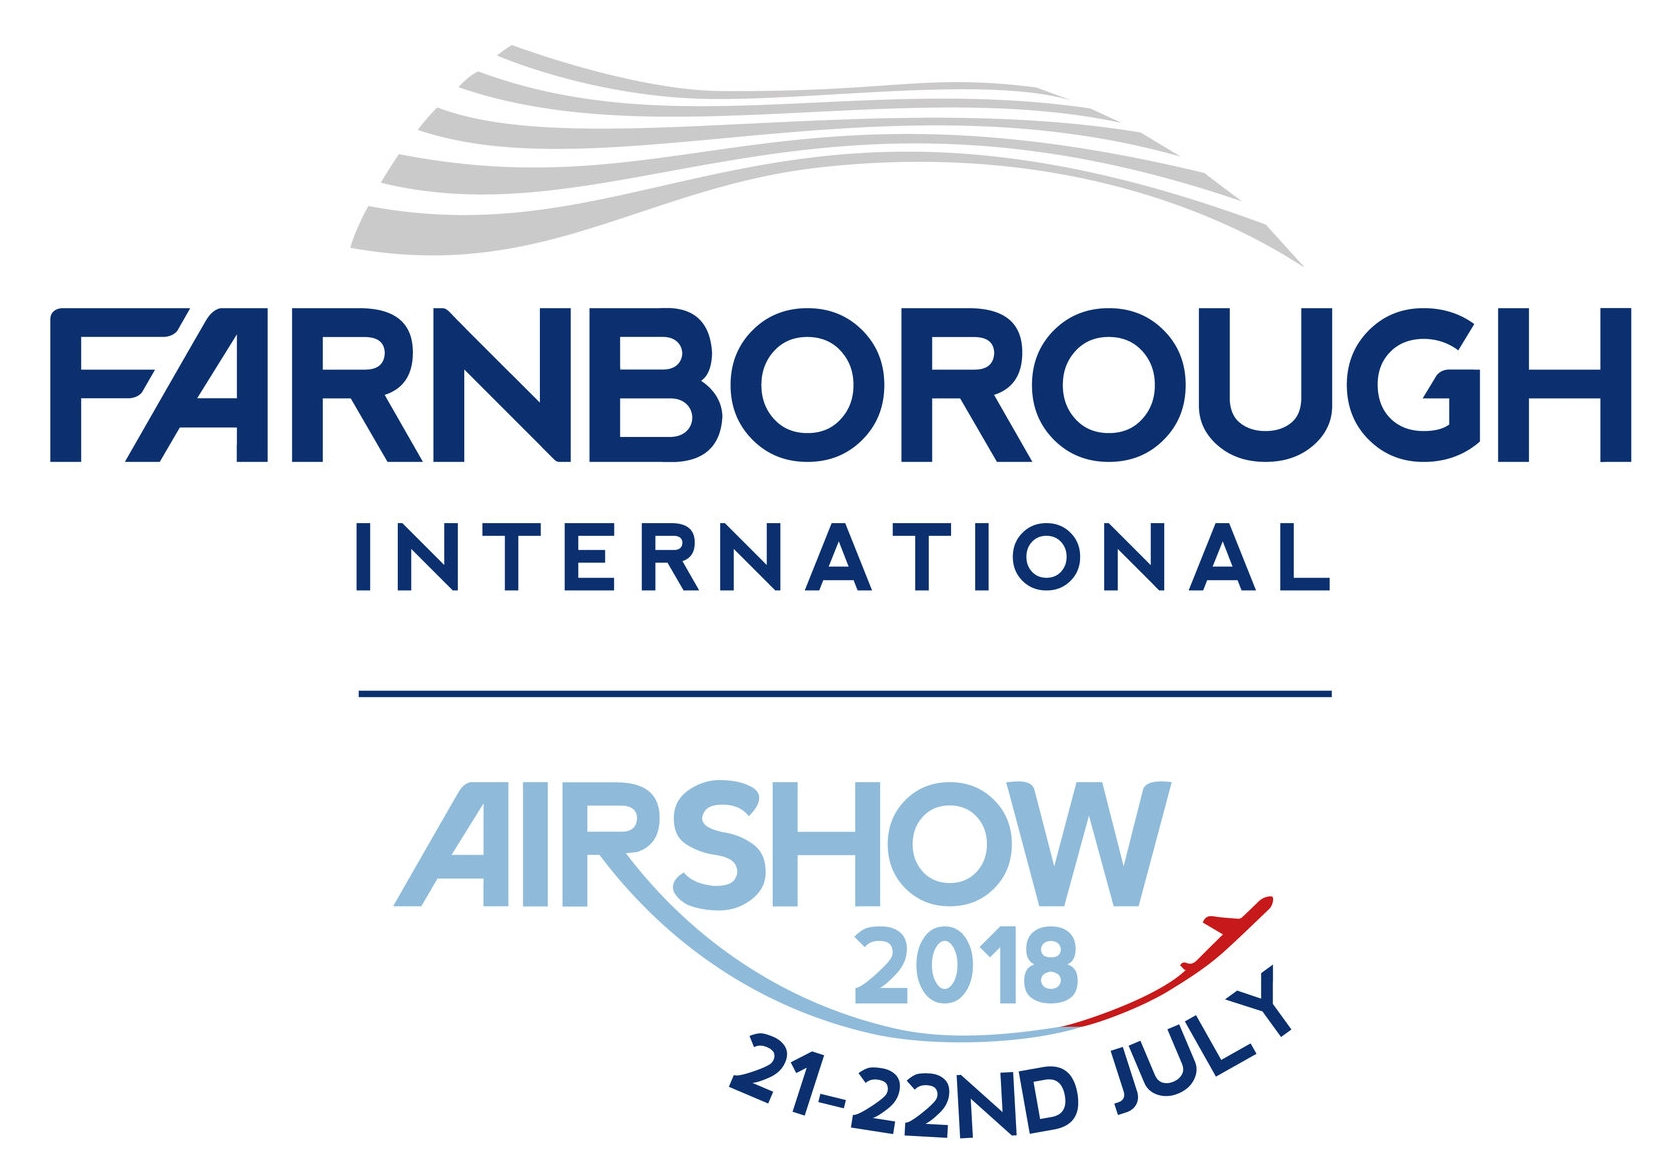 Farnborough international_airshow public logo_with dates_stacked_White BG-01.jpg